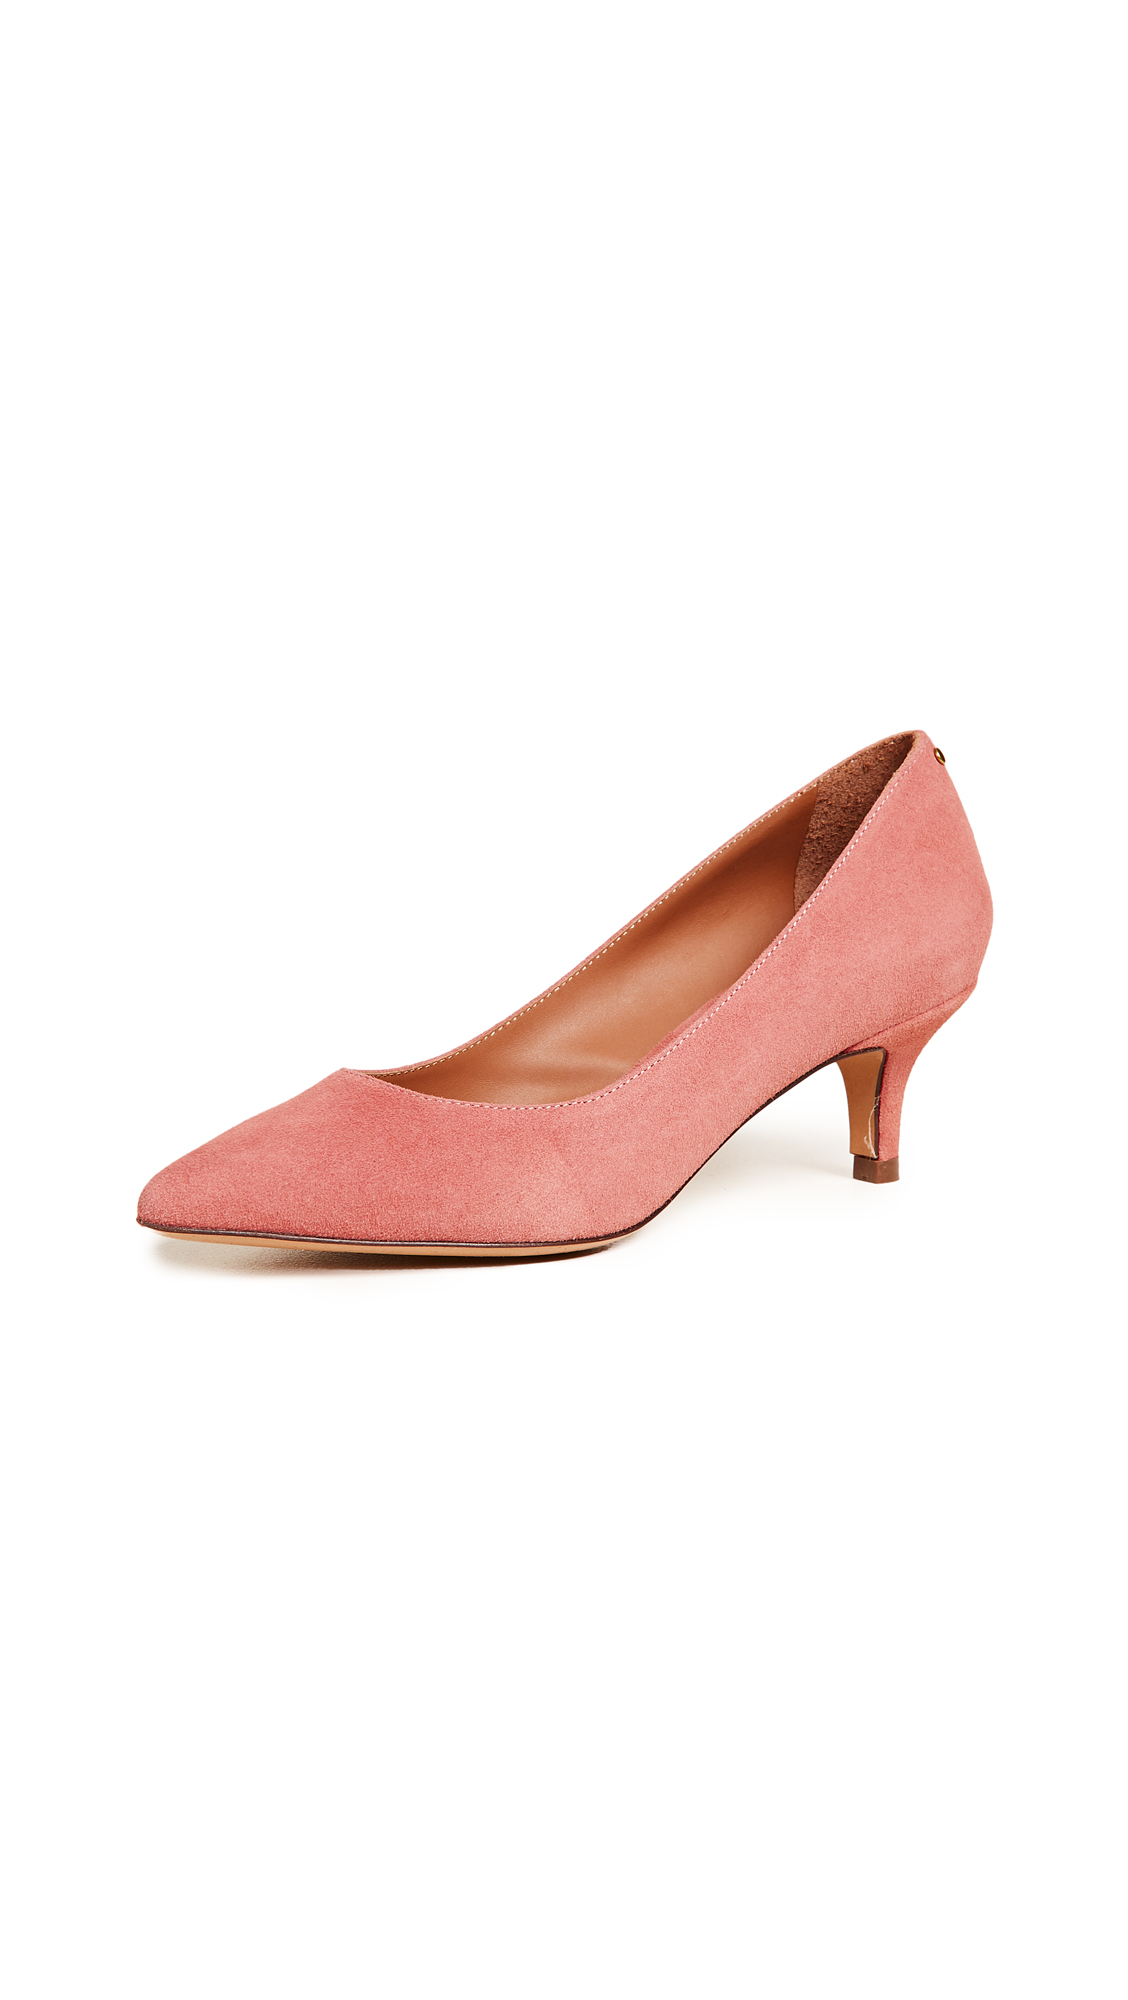 Jerome Dreyfuss Panpan 55 Pumps - Velours Rosa